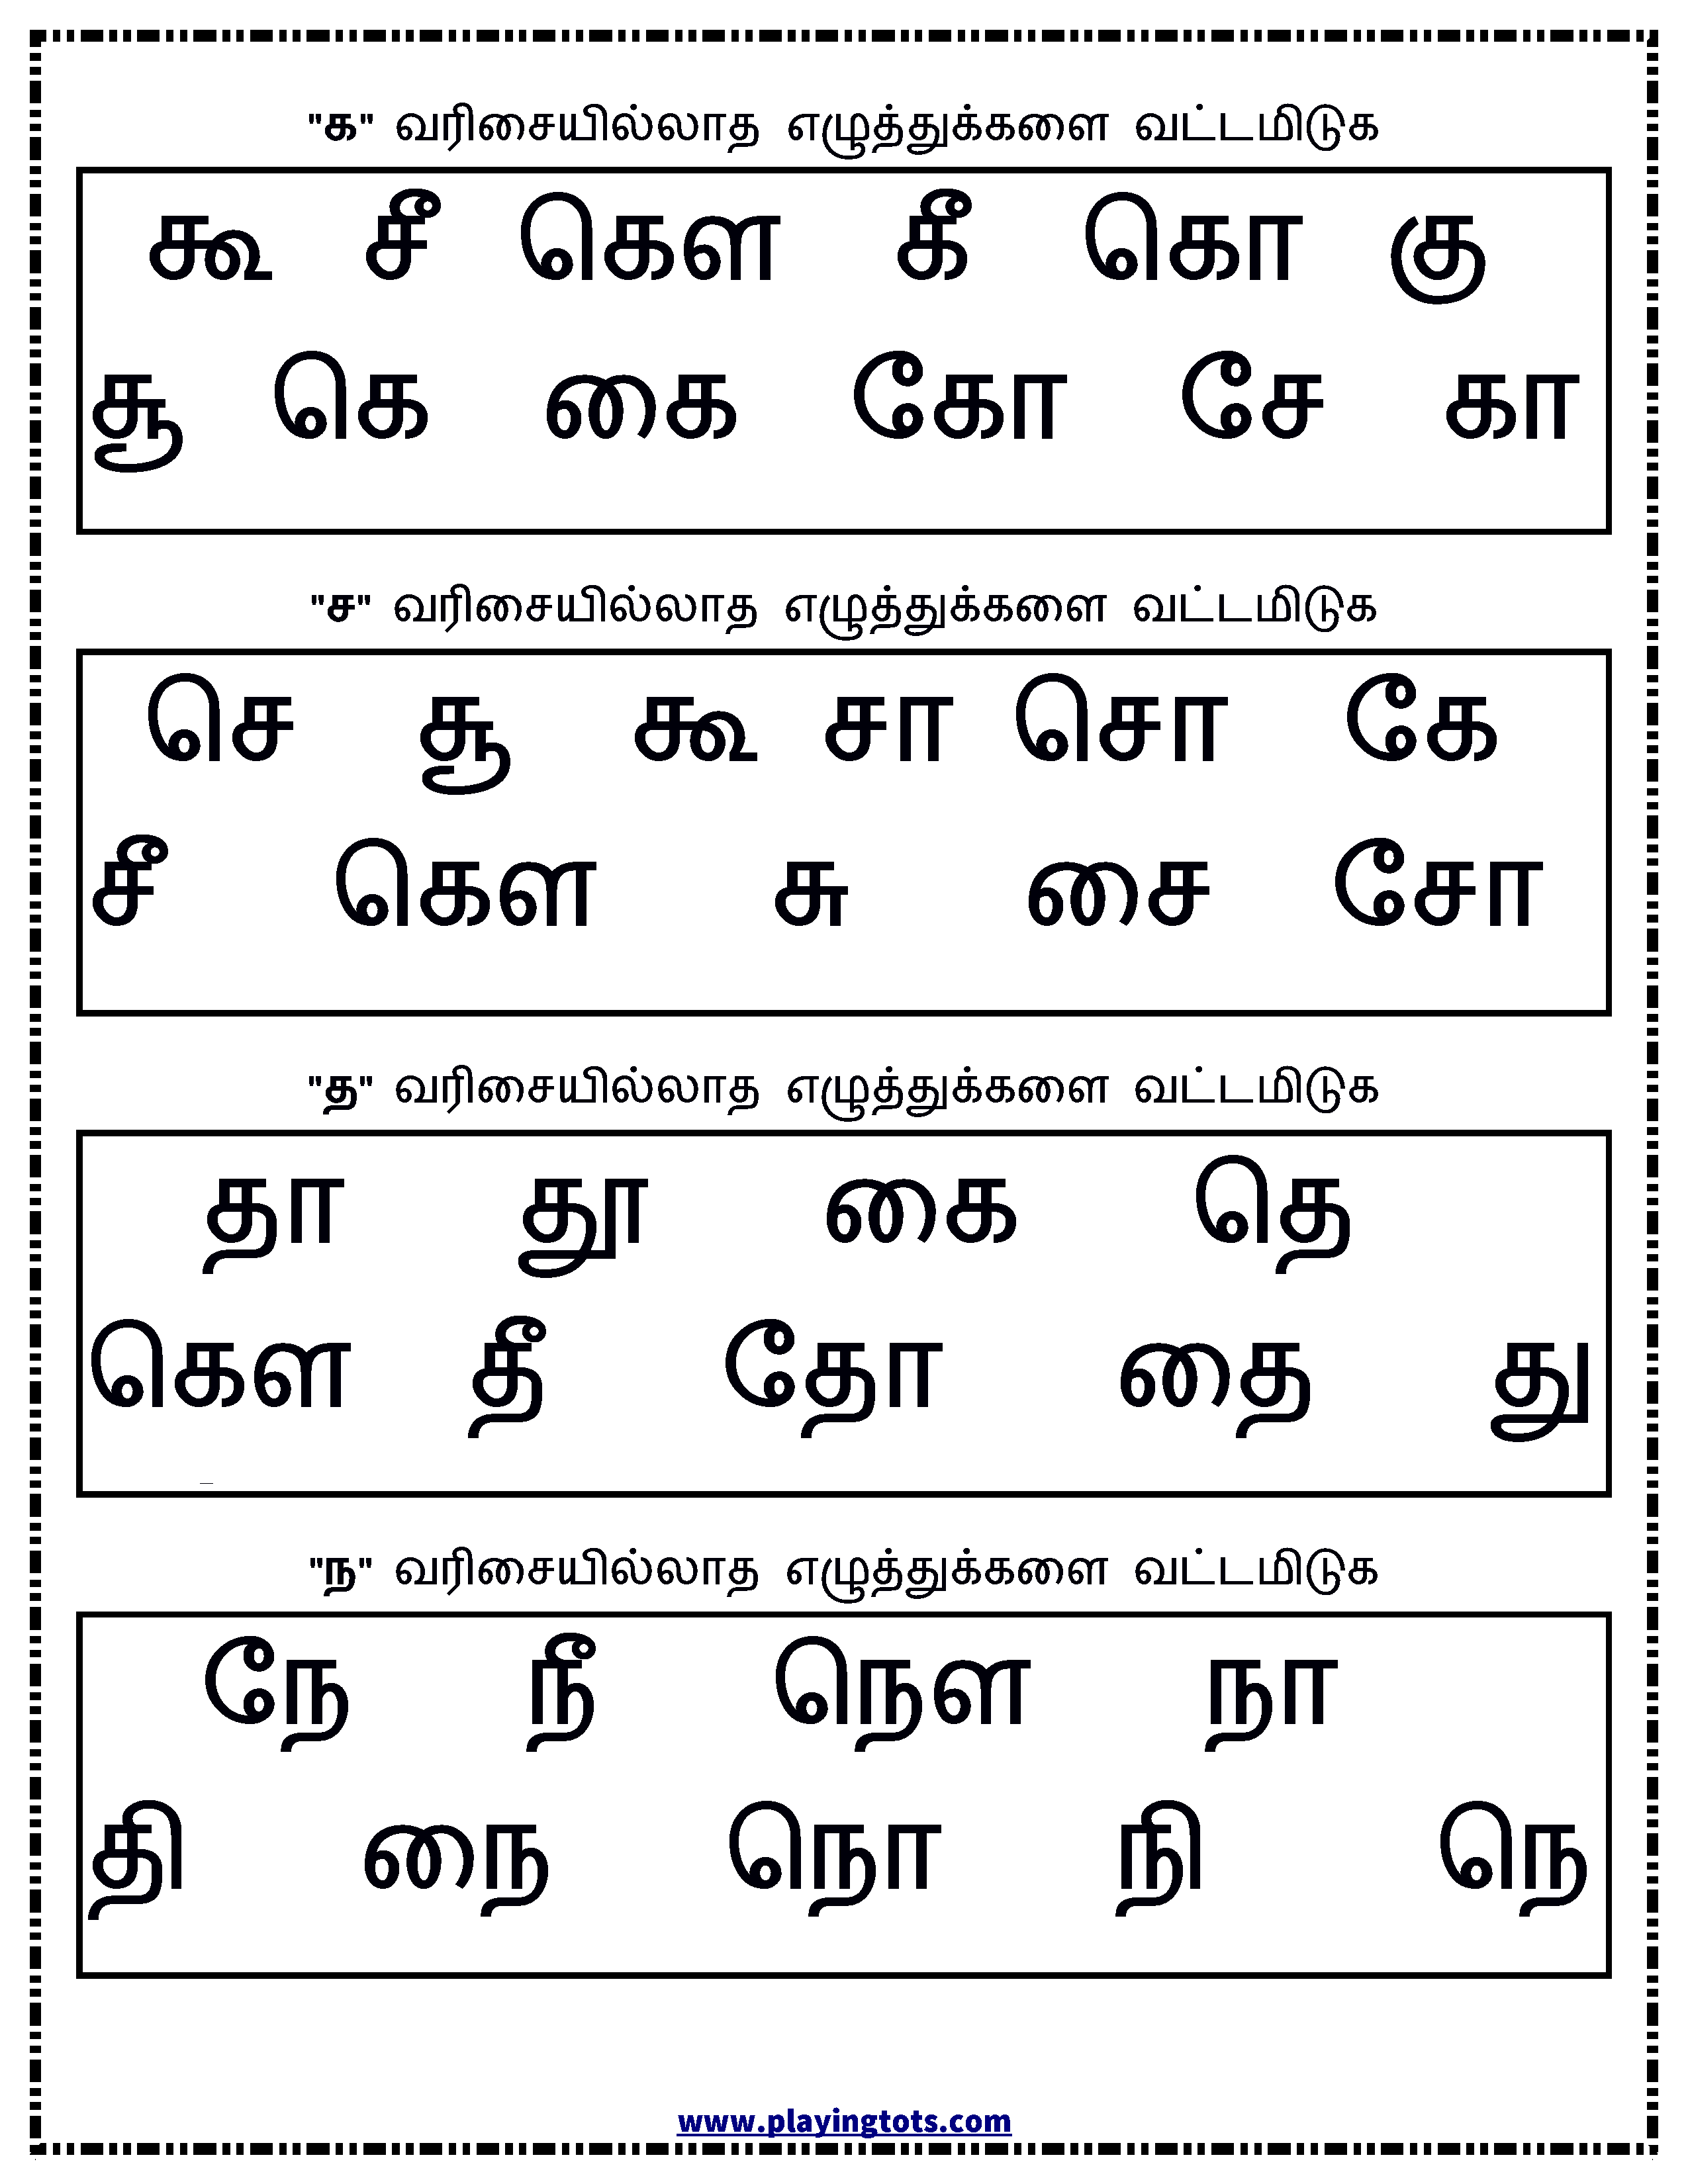 Worksheets Tamil Letters Odd One Out